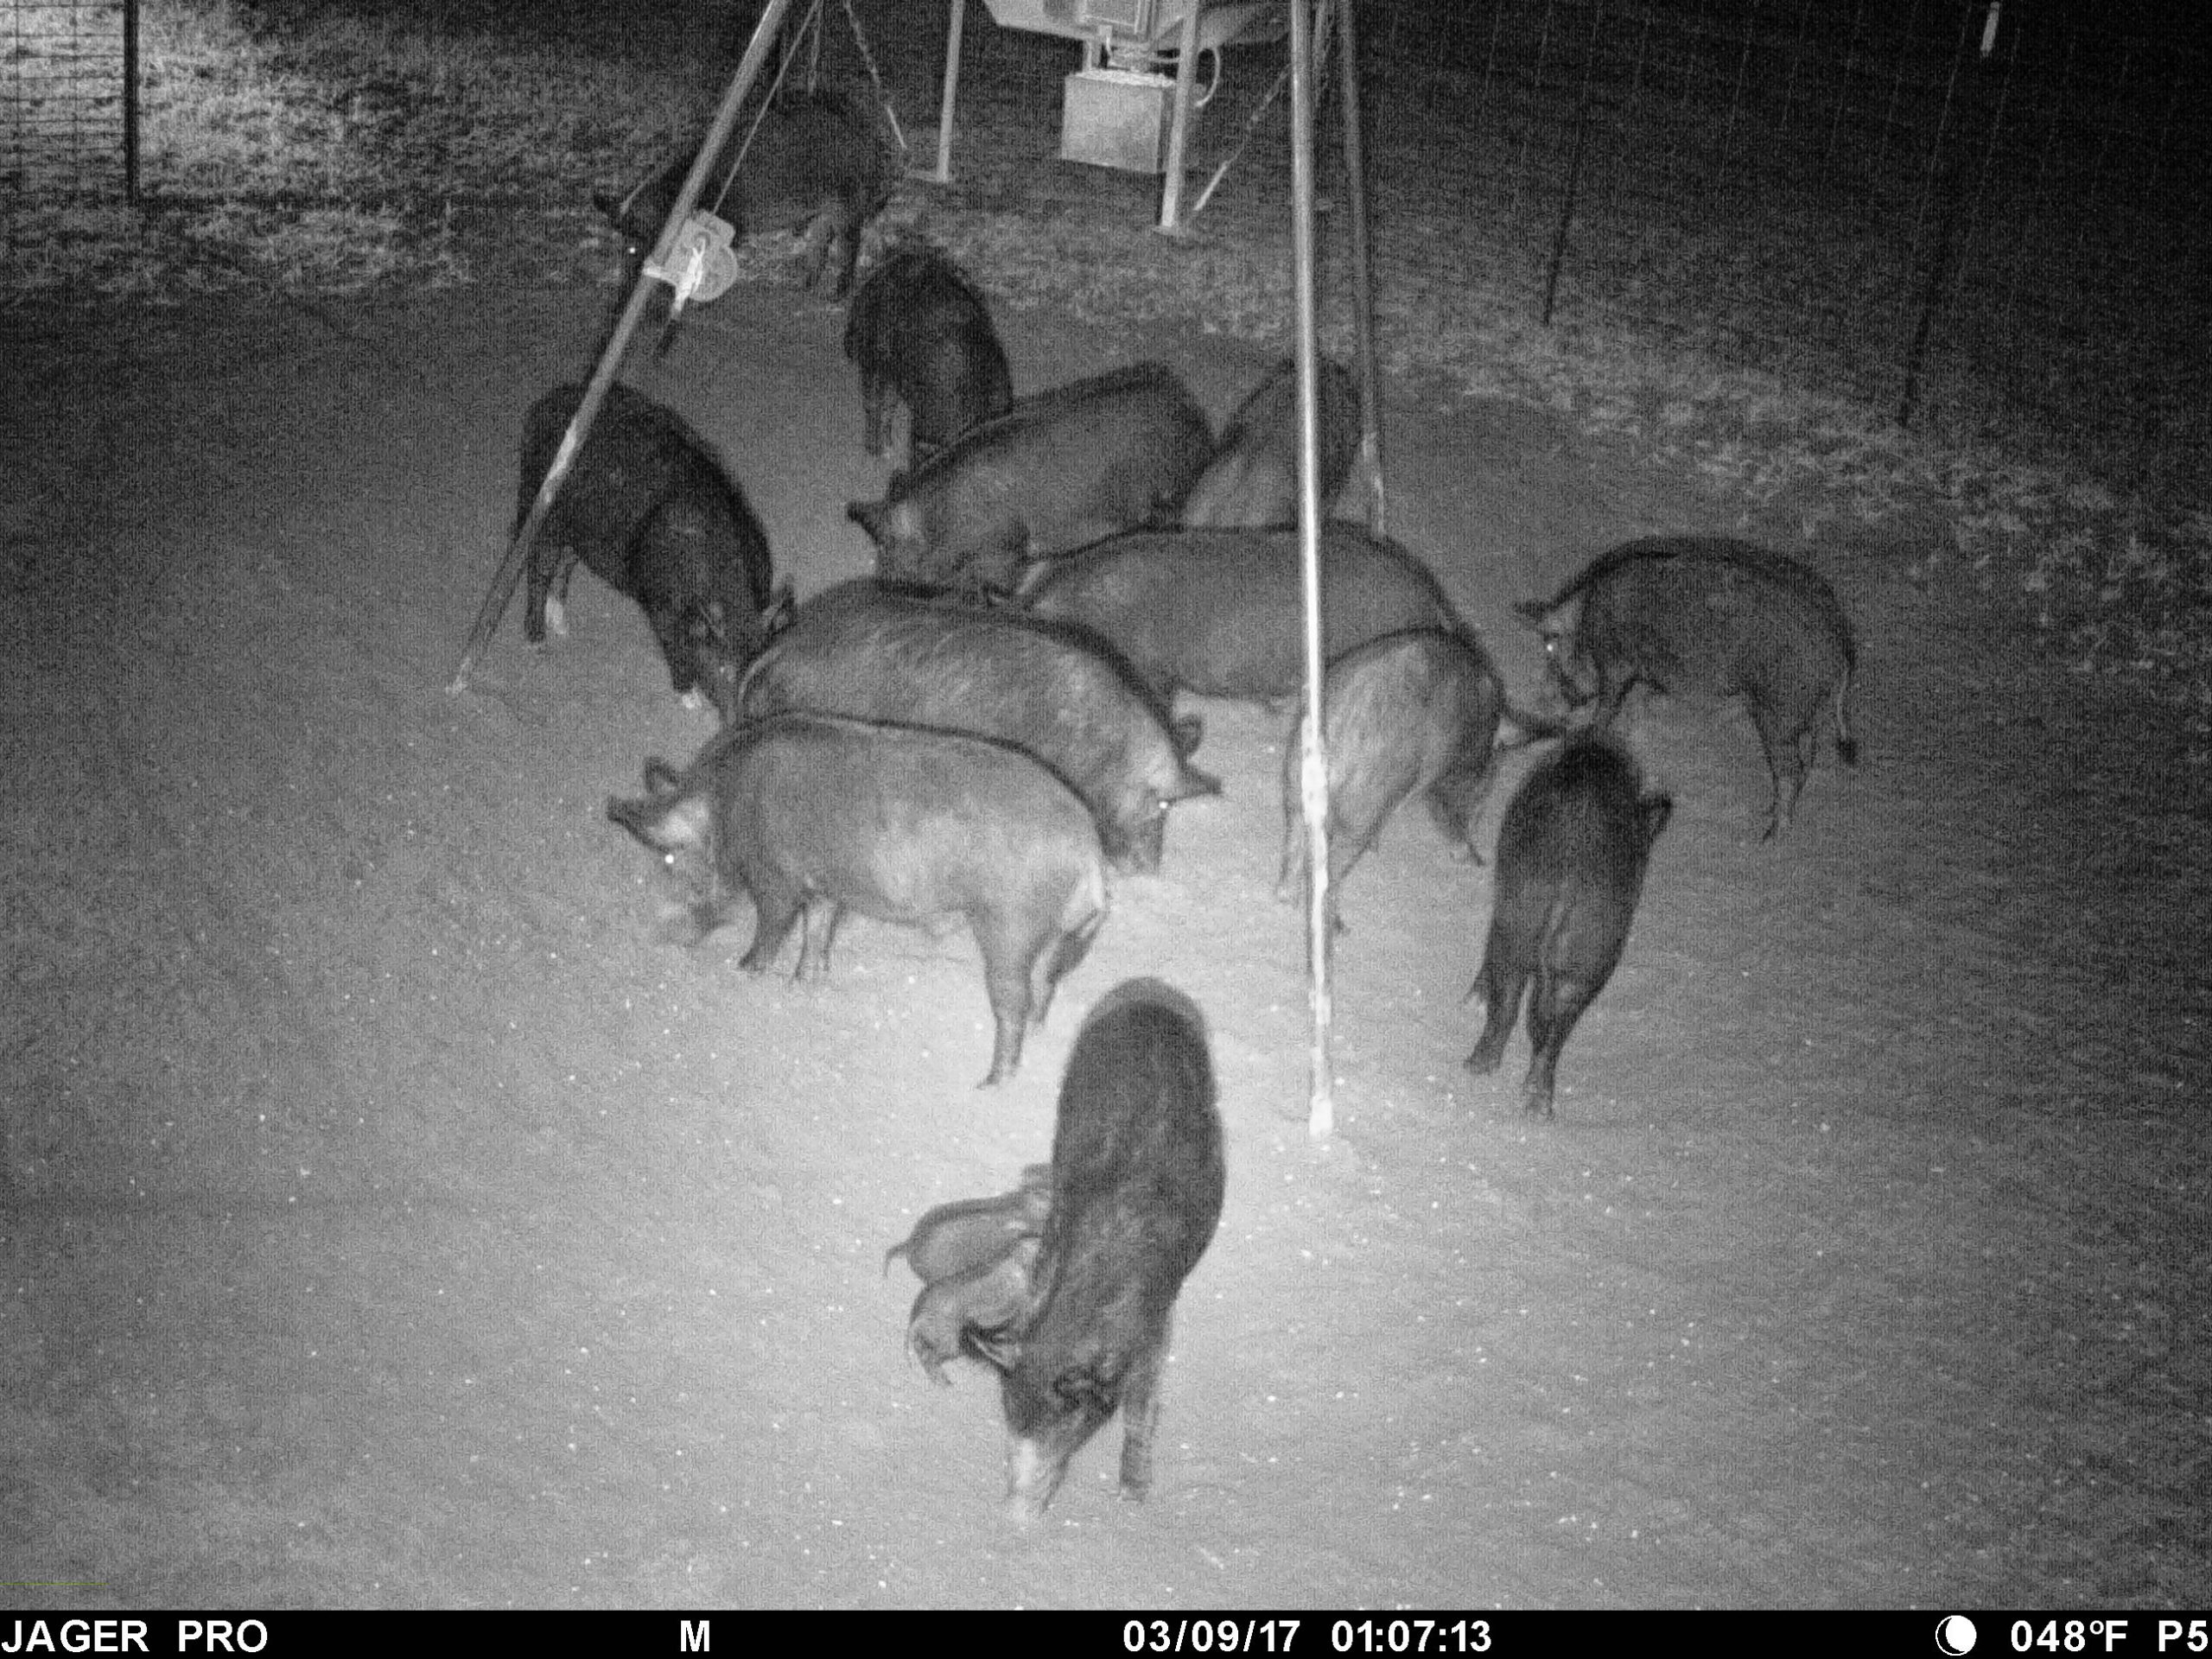 Hog Trapping – Trigger Selection